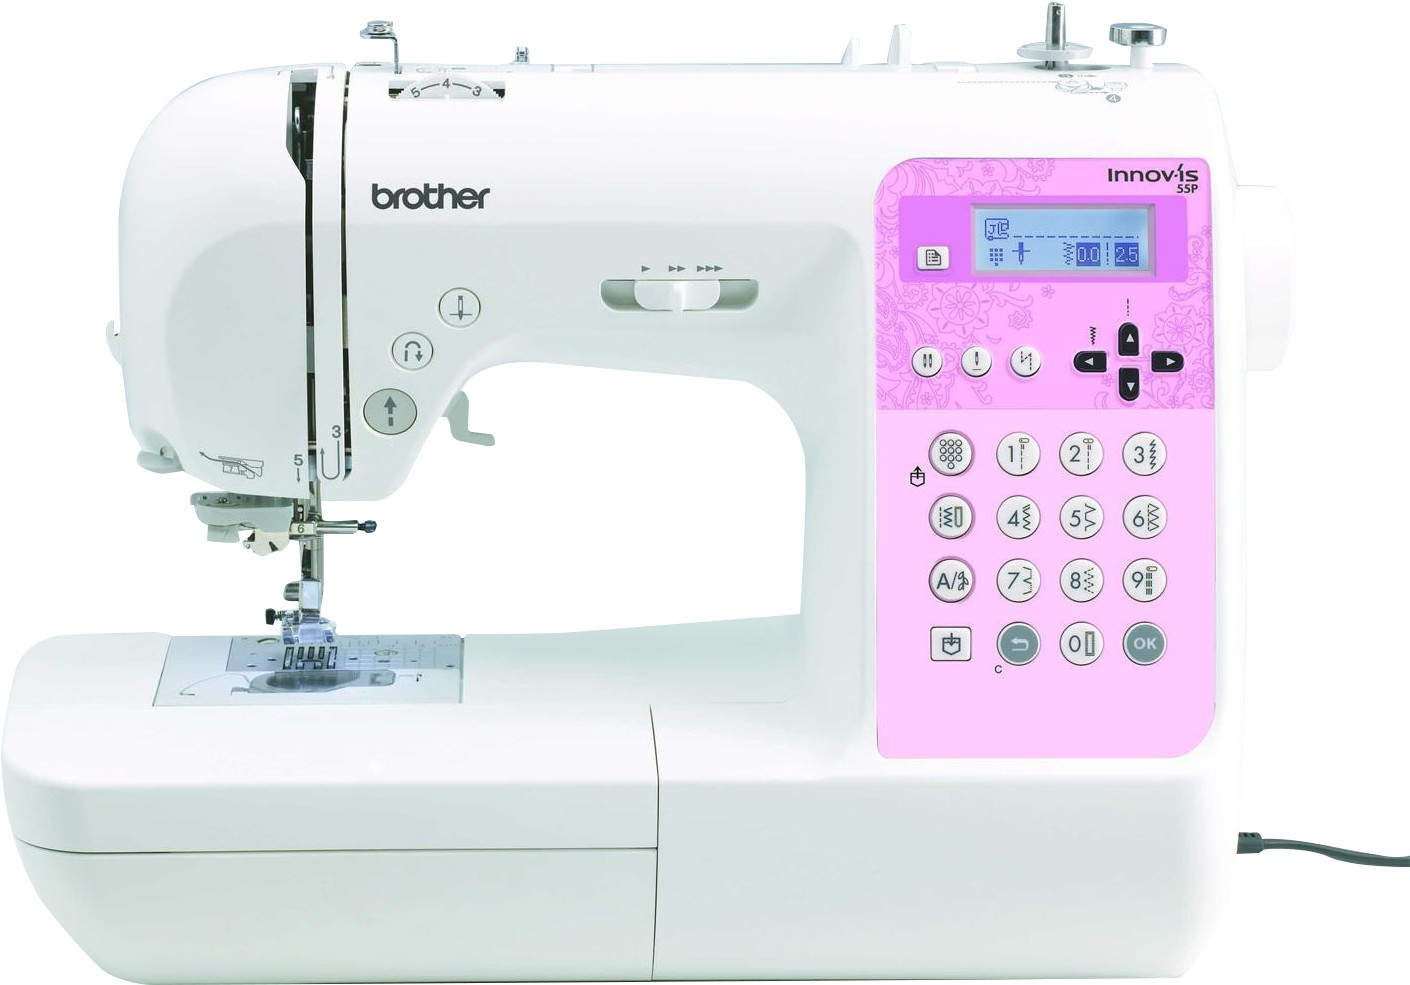 Brother INNOV-IS 55P Computerised Sewing Machine( Built-in Stitches 135)